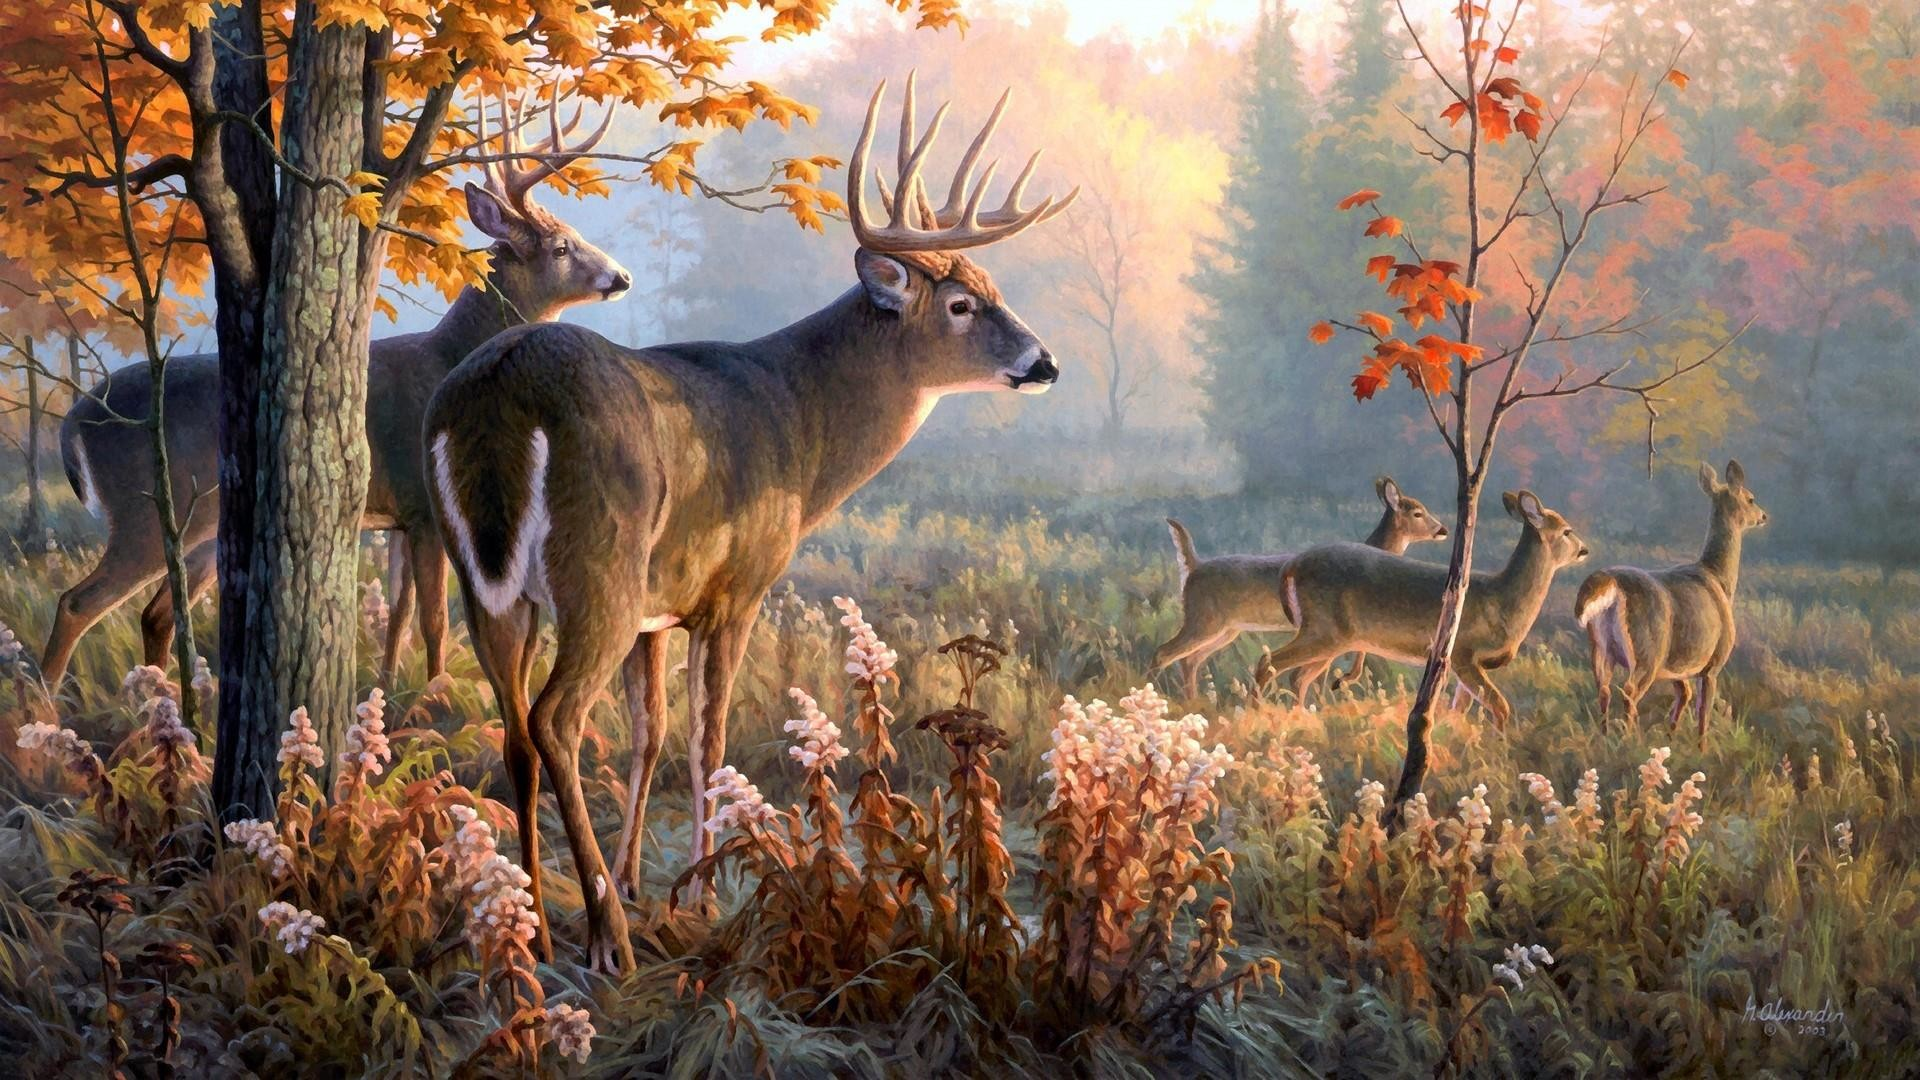 Res: 1920x1080, Deers In The Forest - Nature Painting Art Wallpaper   Wallpaper Studio 10    Tens of thousands HD and UltraHD wallpapers for Android, Windows and Xbox